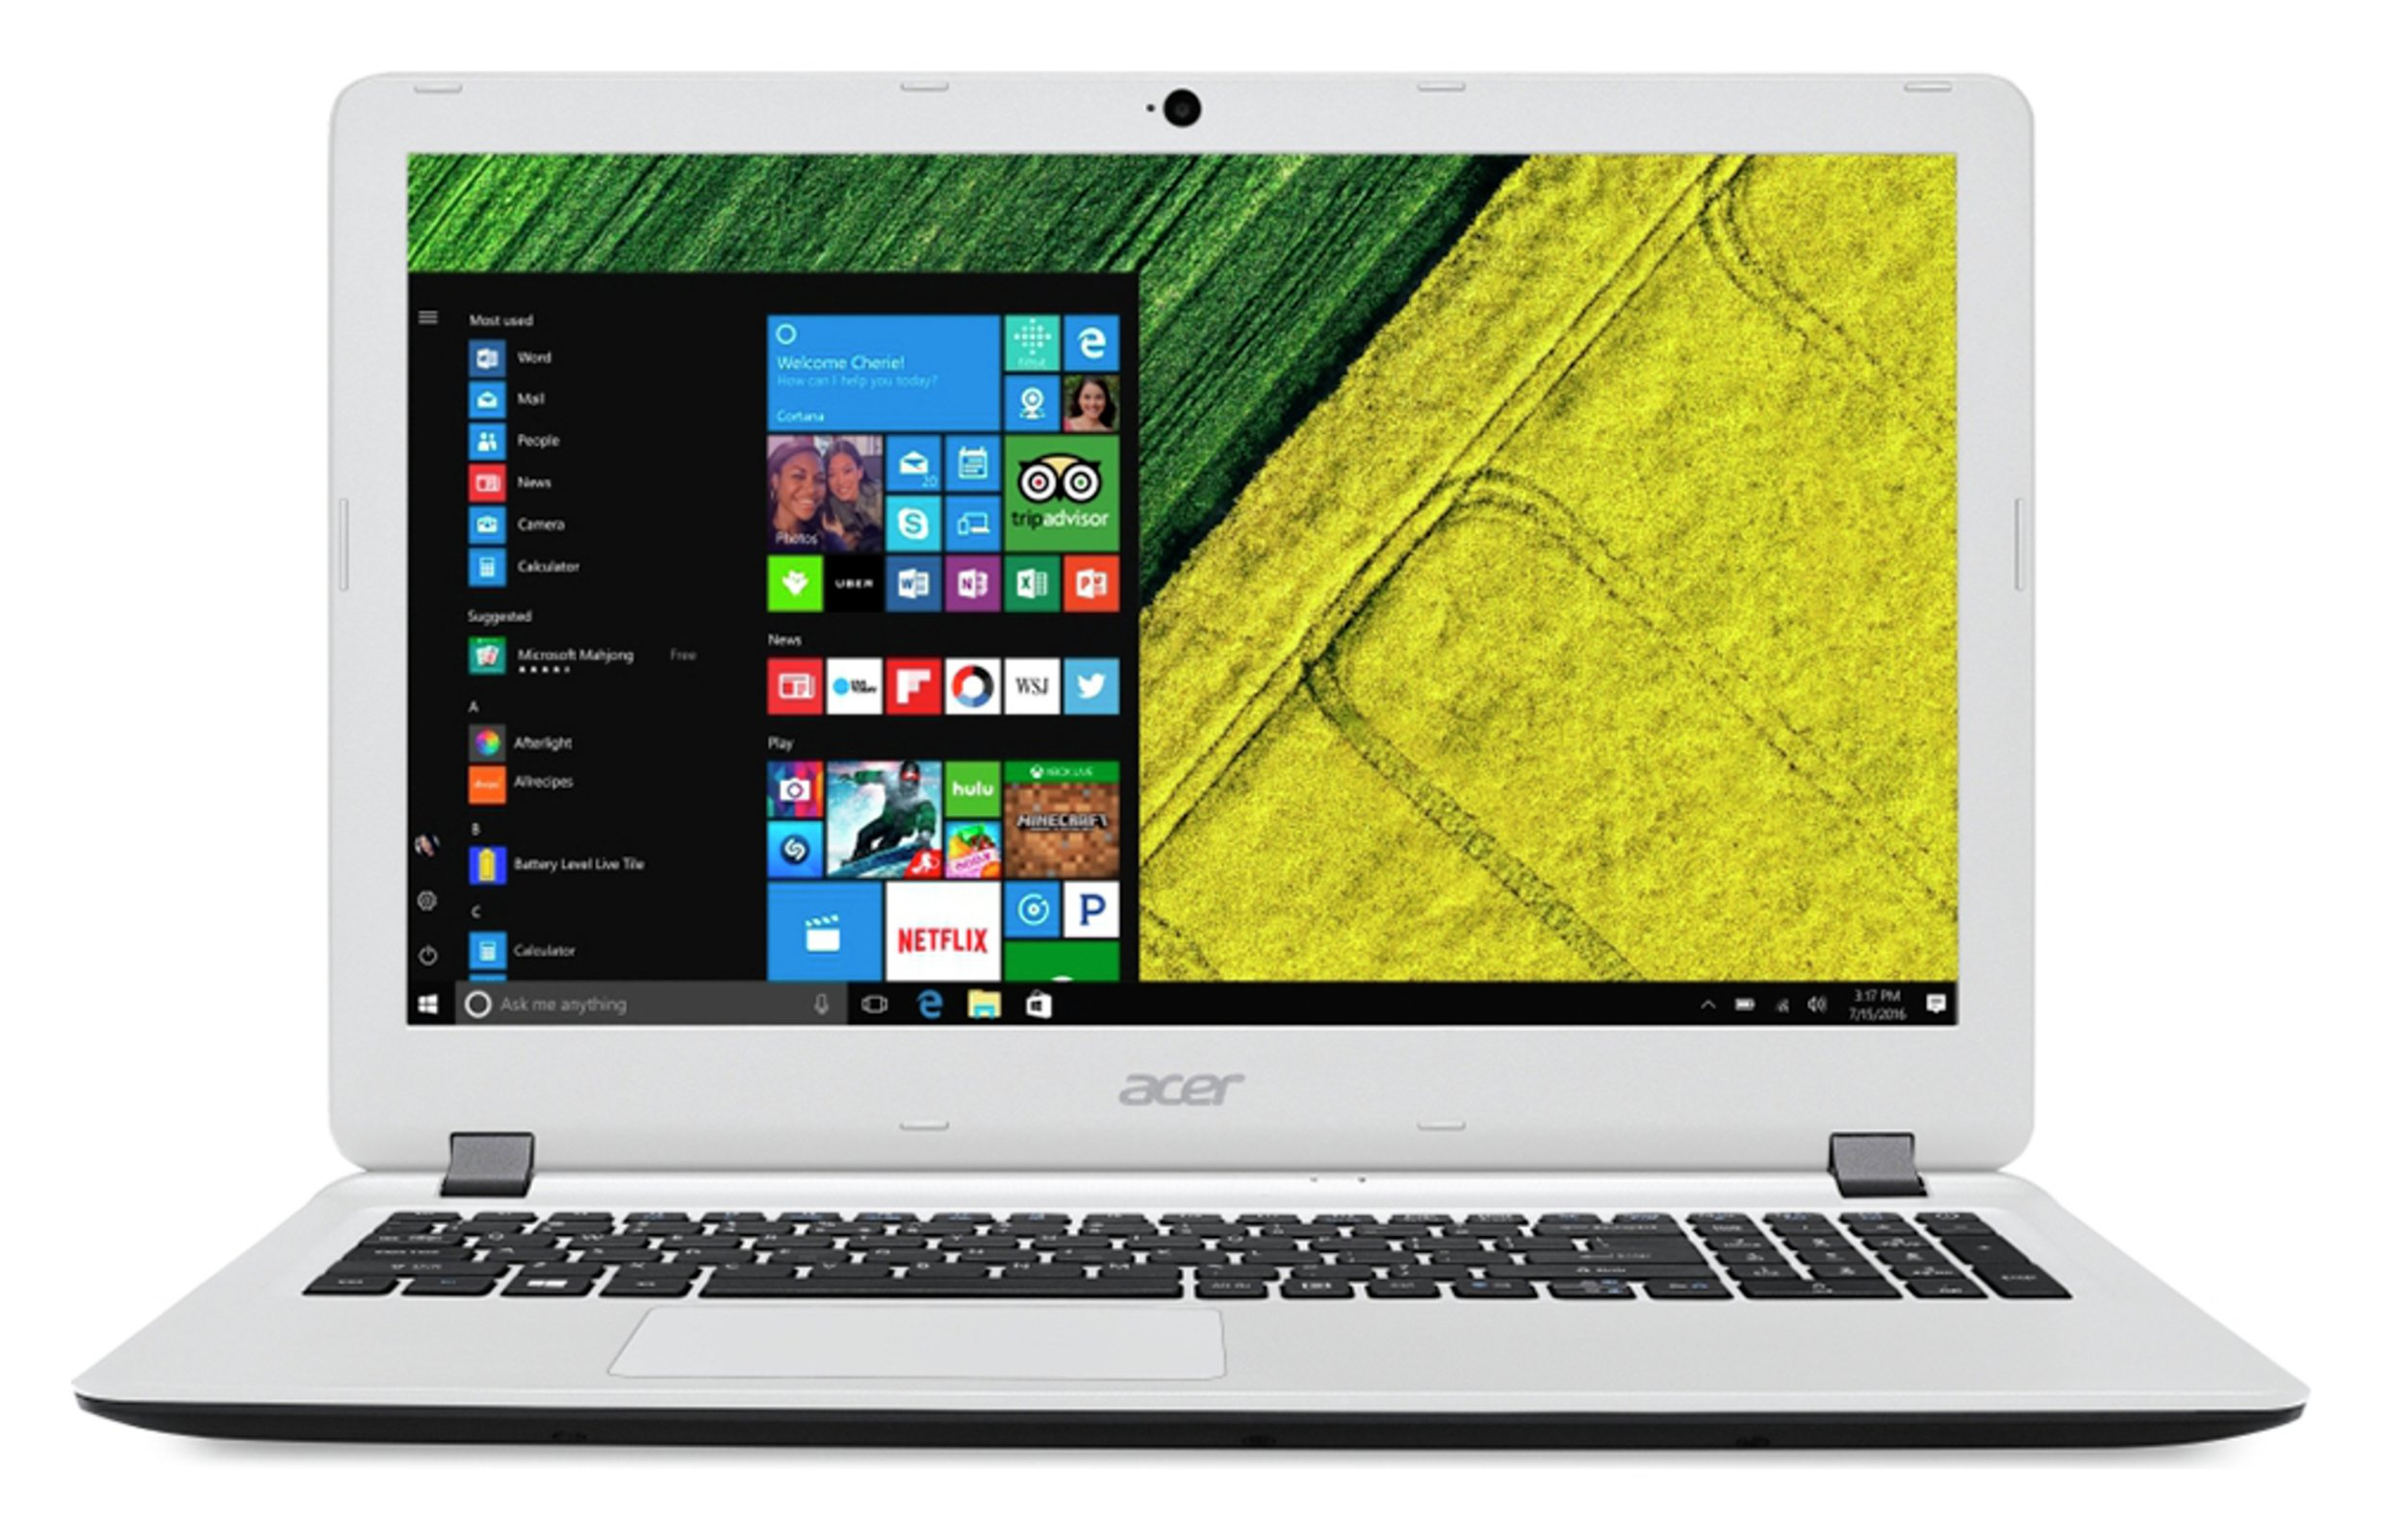 Image of Acer Aspire ES 15.6 Inch AMD E1 4GB 1TB Laptop - White